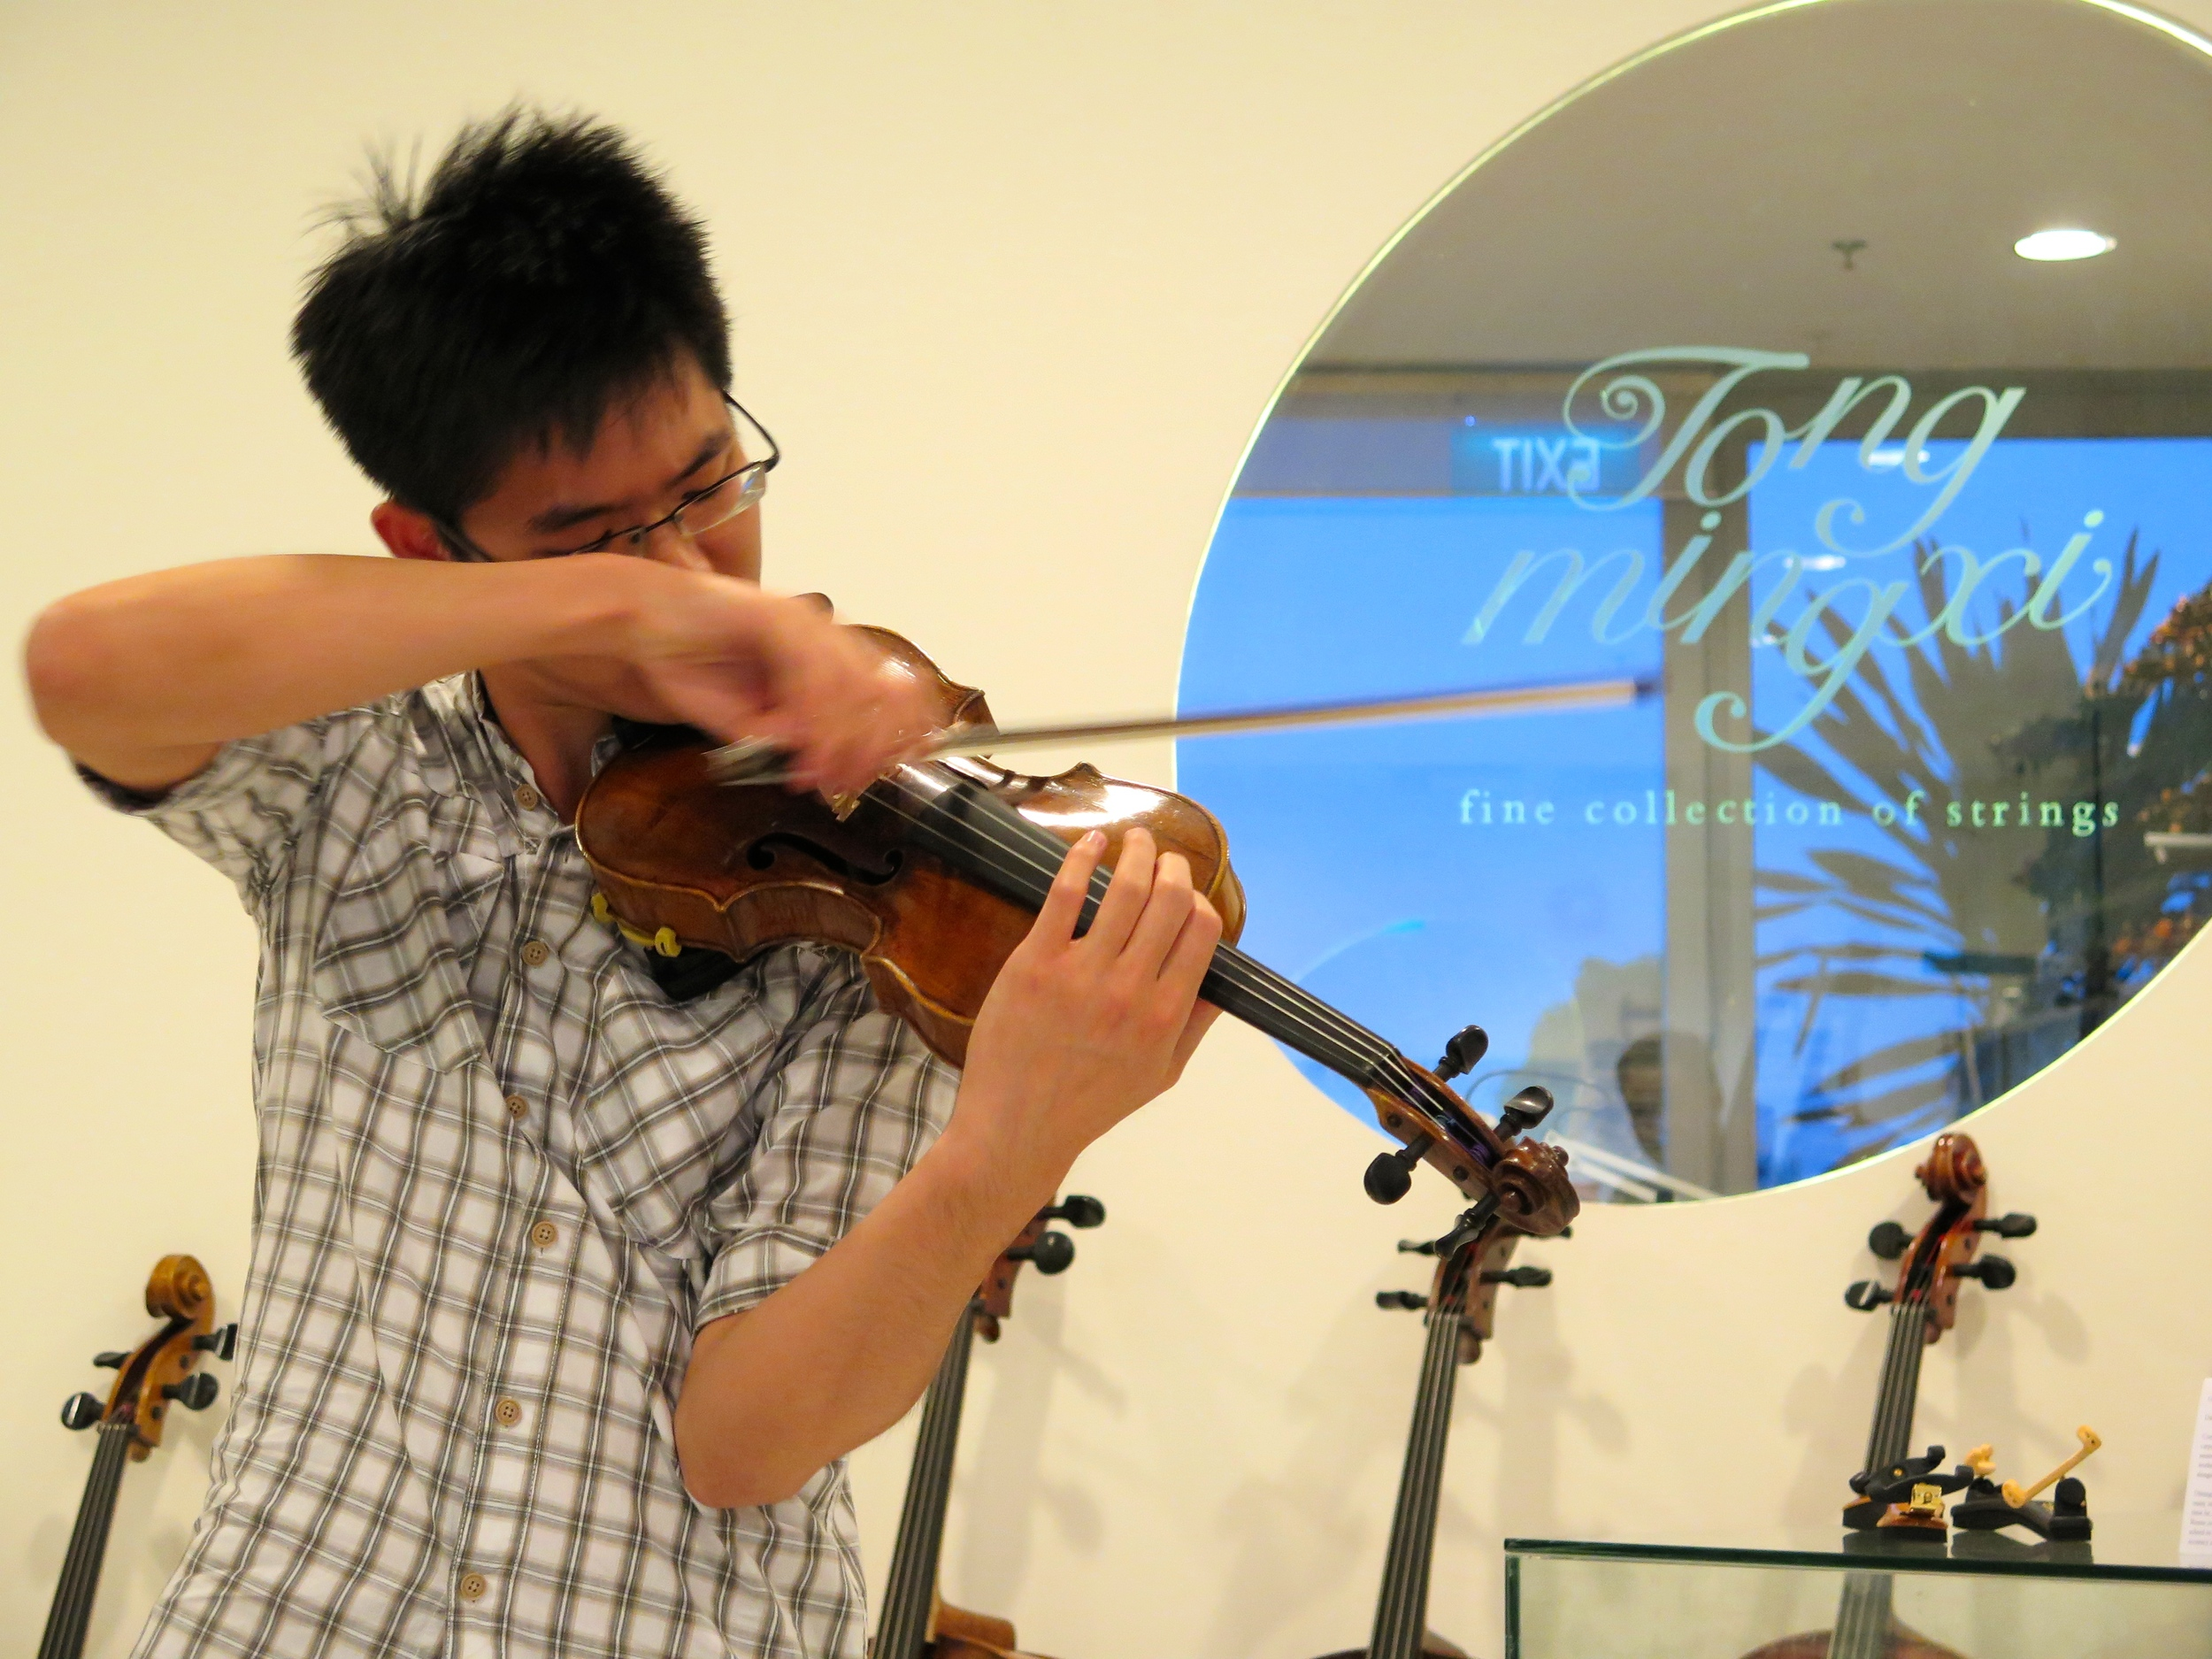 Violinist Alan Choo playing on one of the violins on display